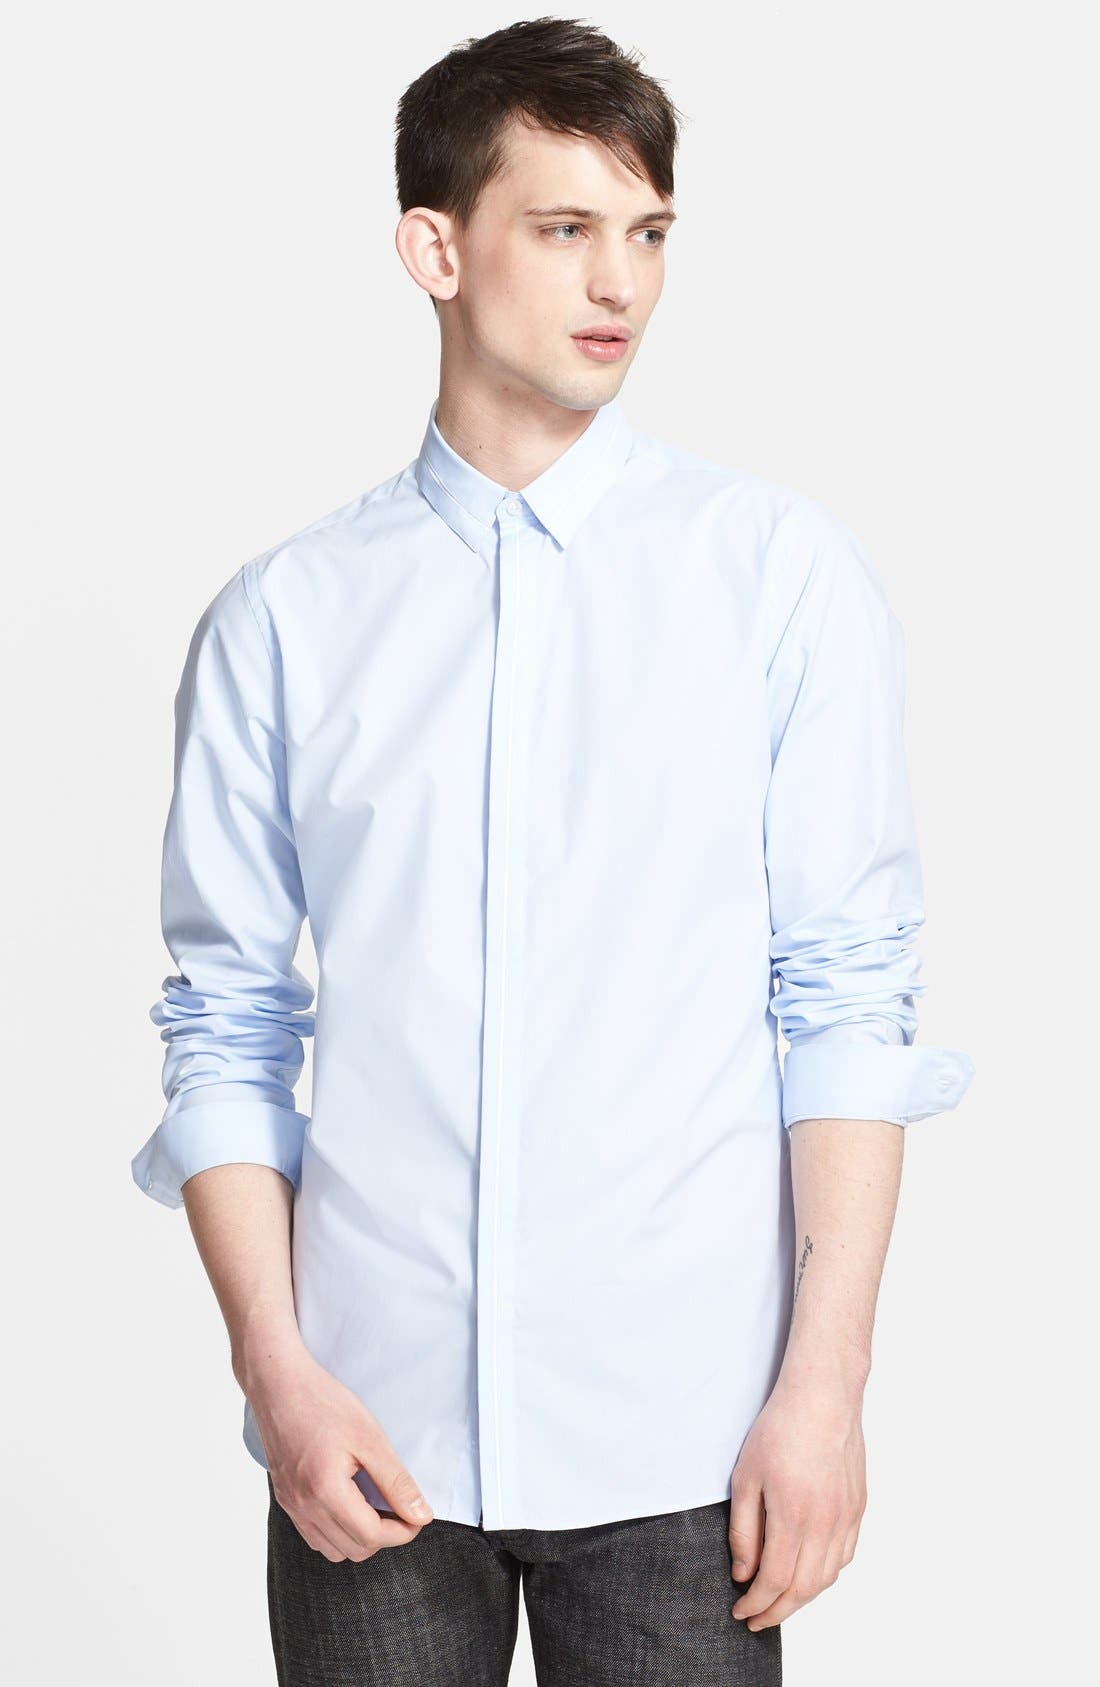 Main Image - The Kooples Fitted Dress Shirt